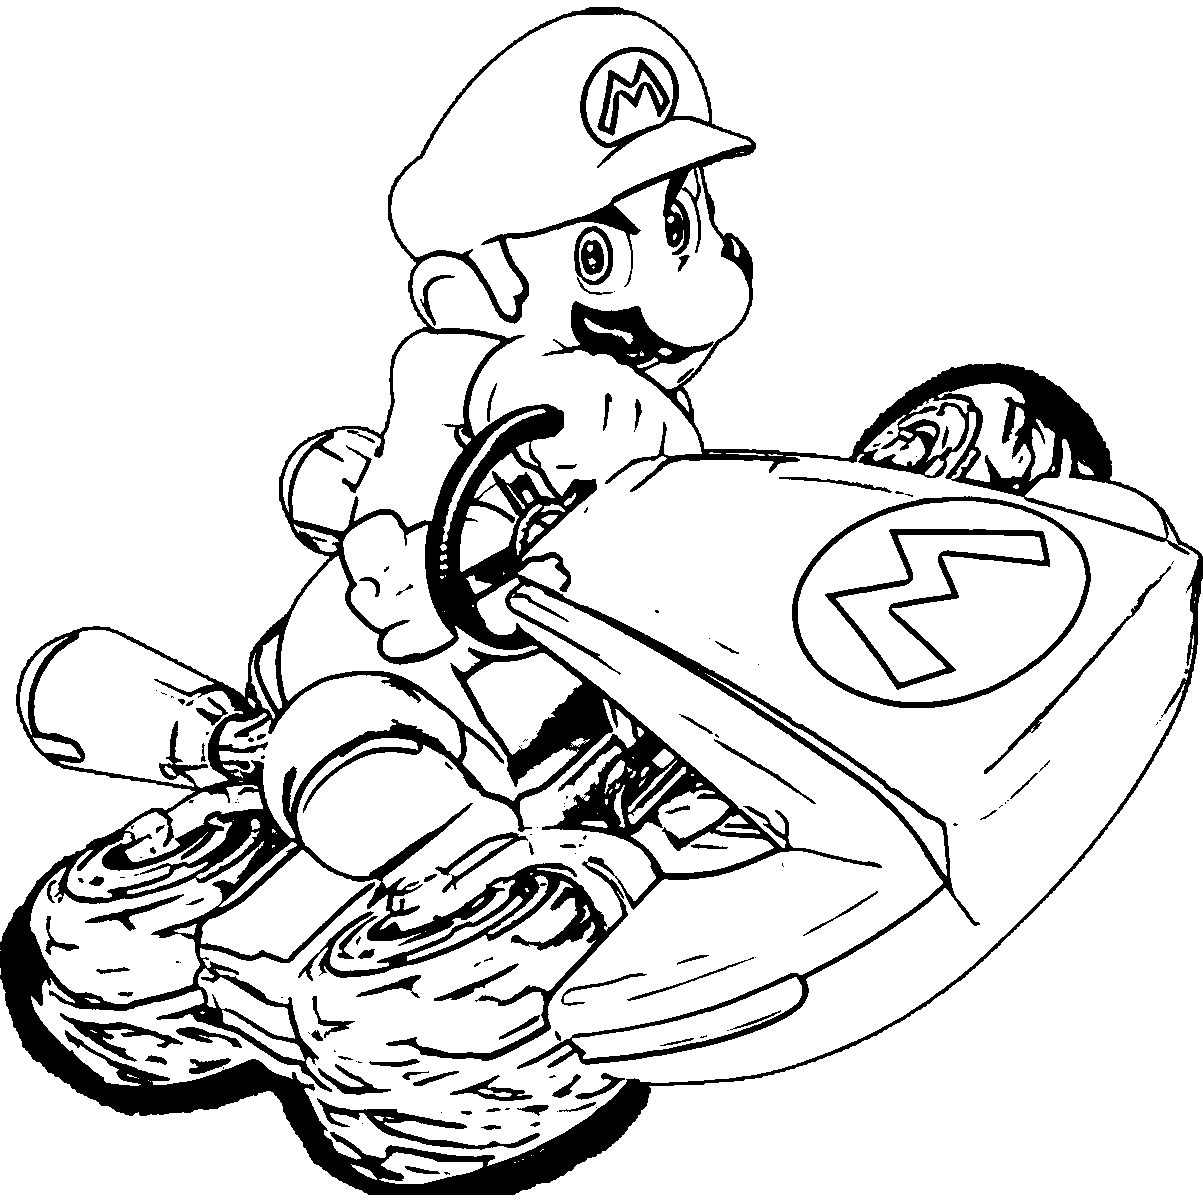 25 Mario Kart Coloring Pages Printable FREE COLORING PAGES Part 2